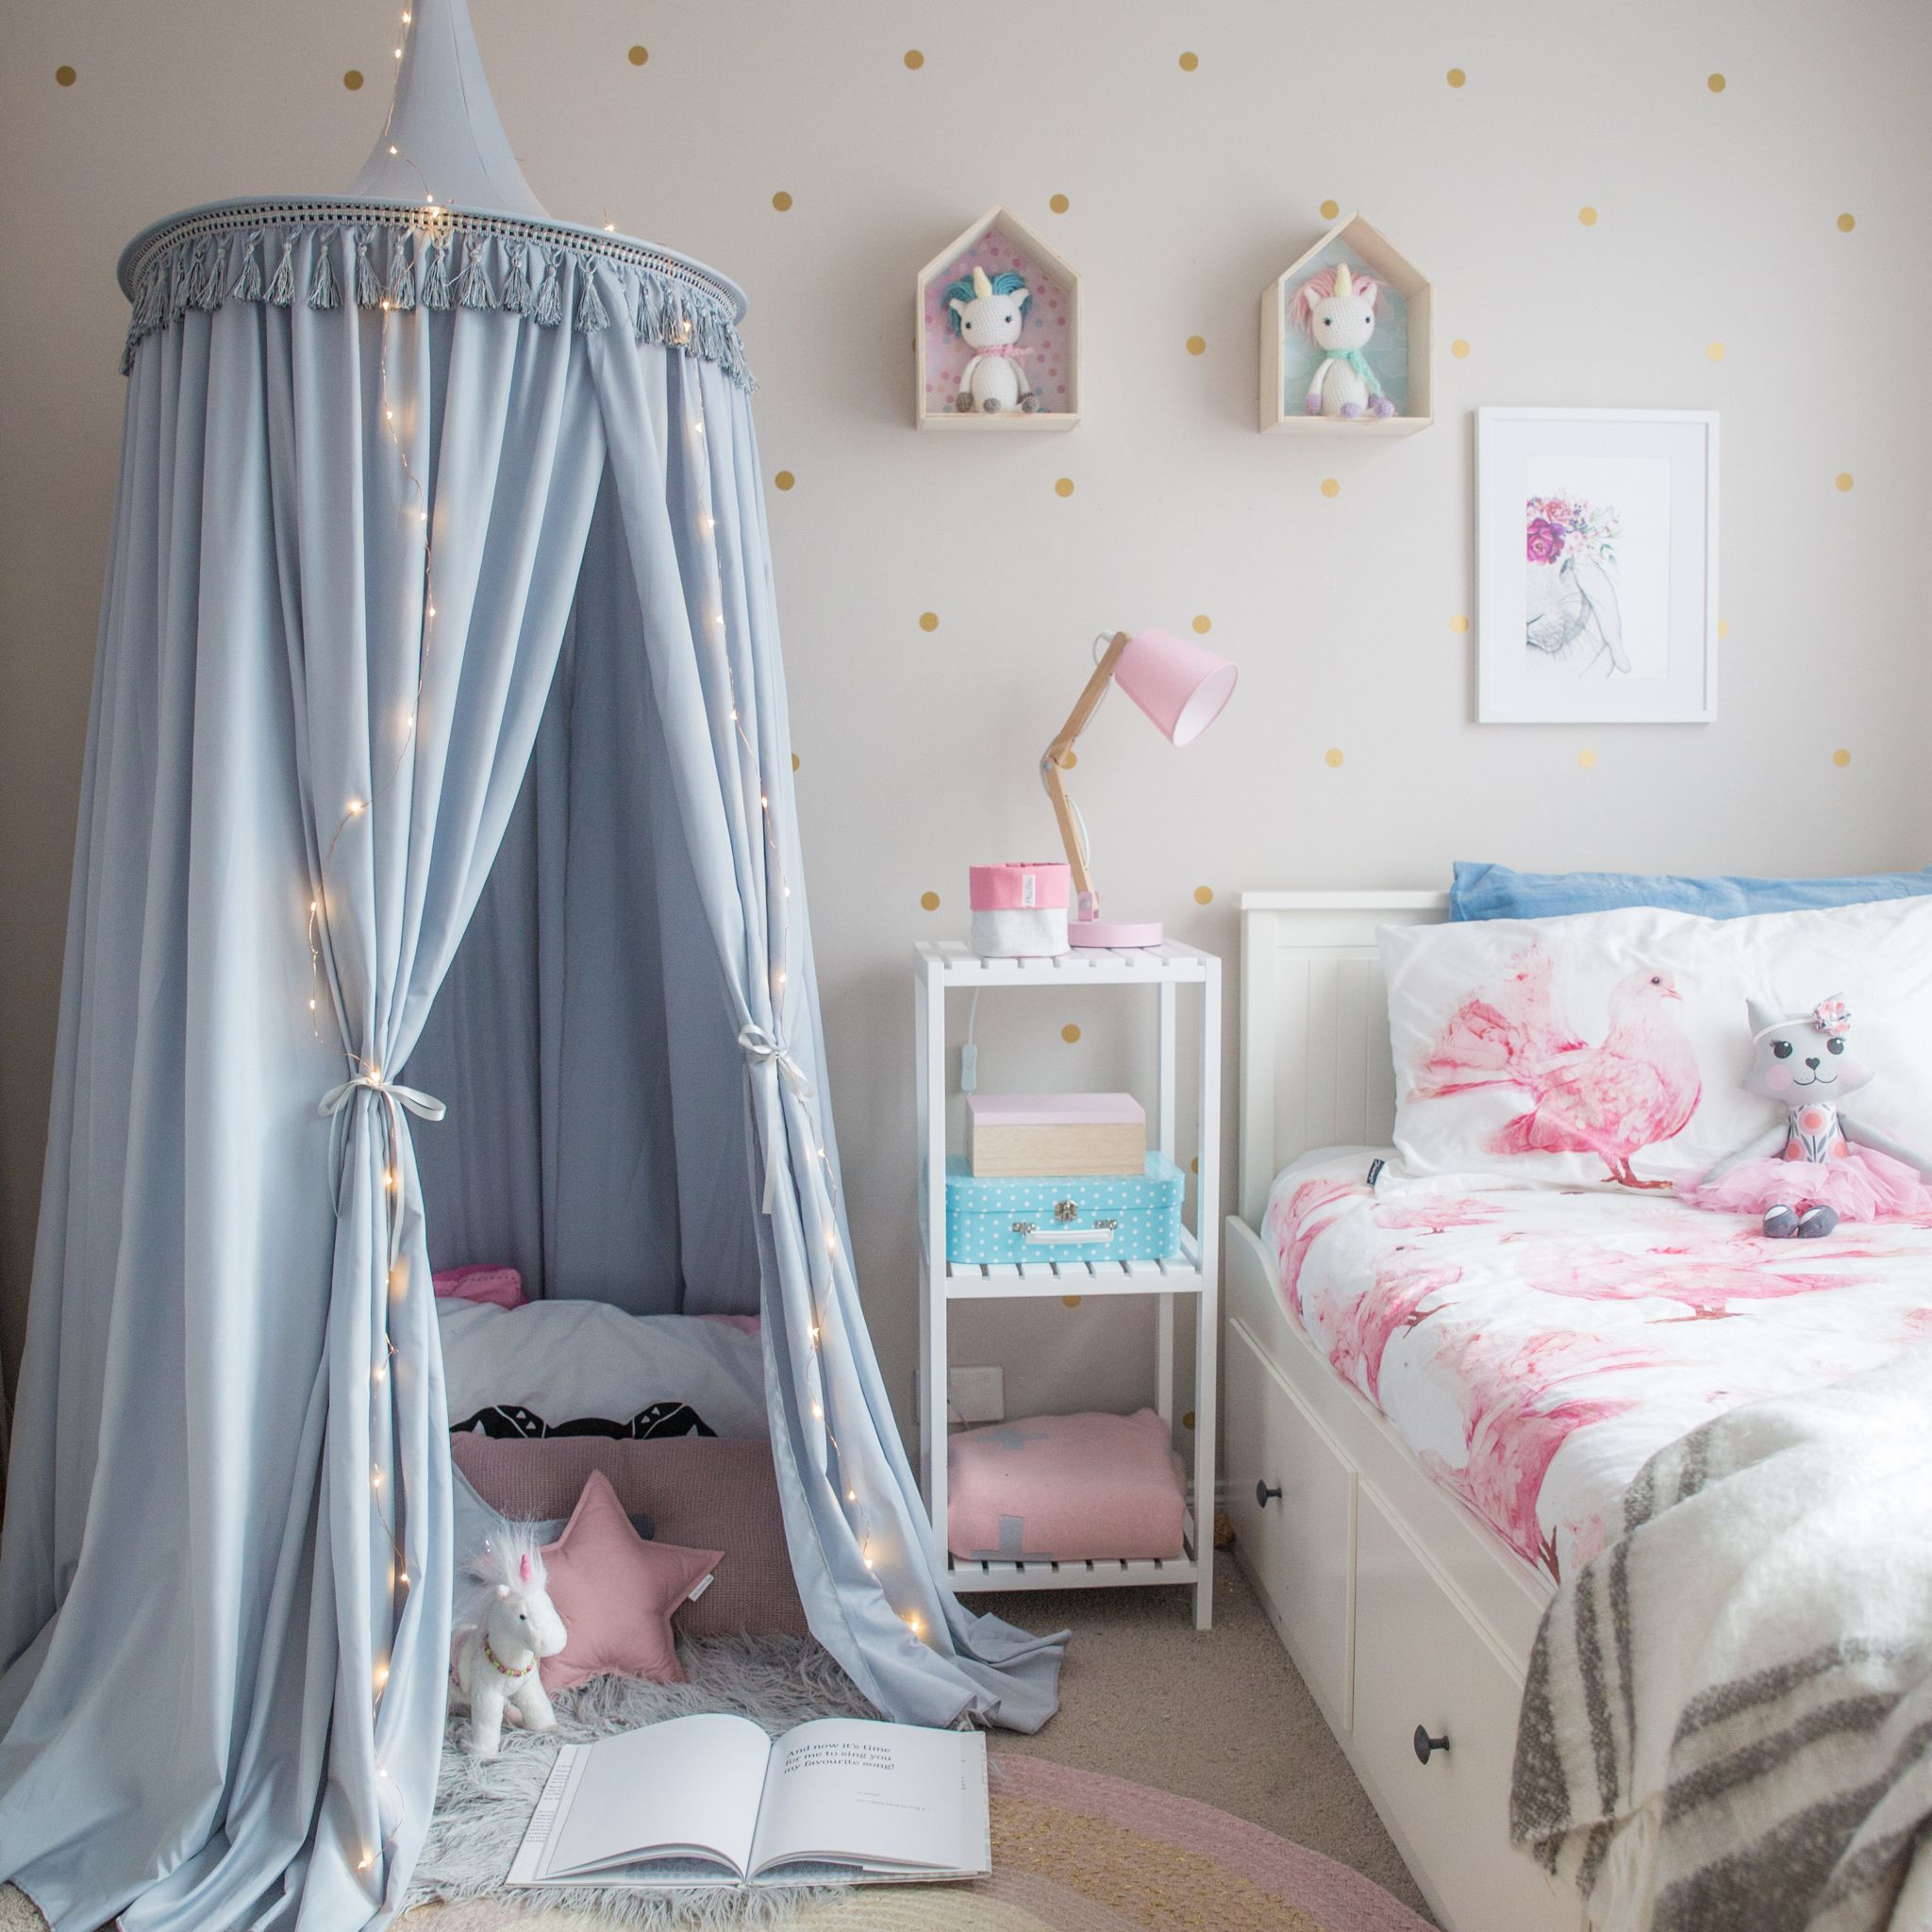 Kidu0027s hanging play canopy tent in light grey! Gorgeous! Girls bedroom ideas hang : hanging play canopy - memphite.com